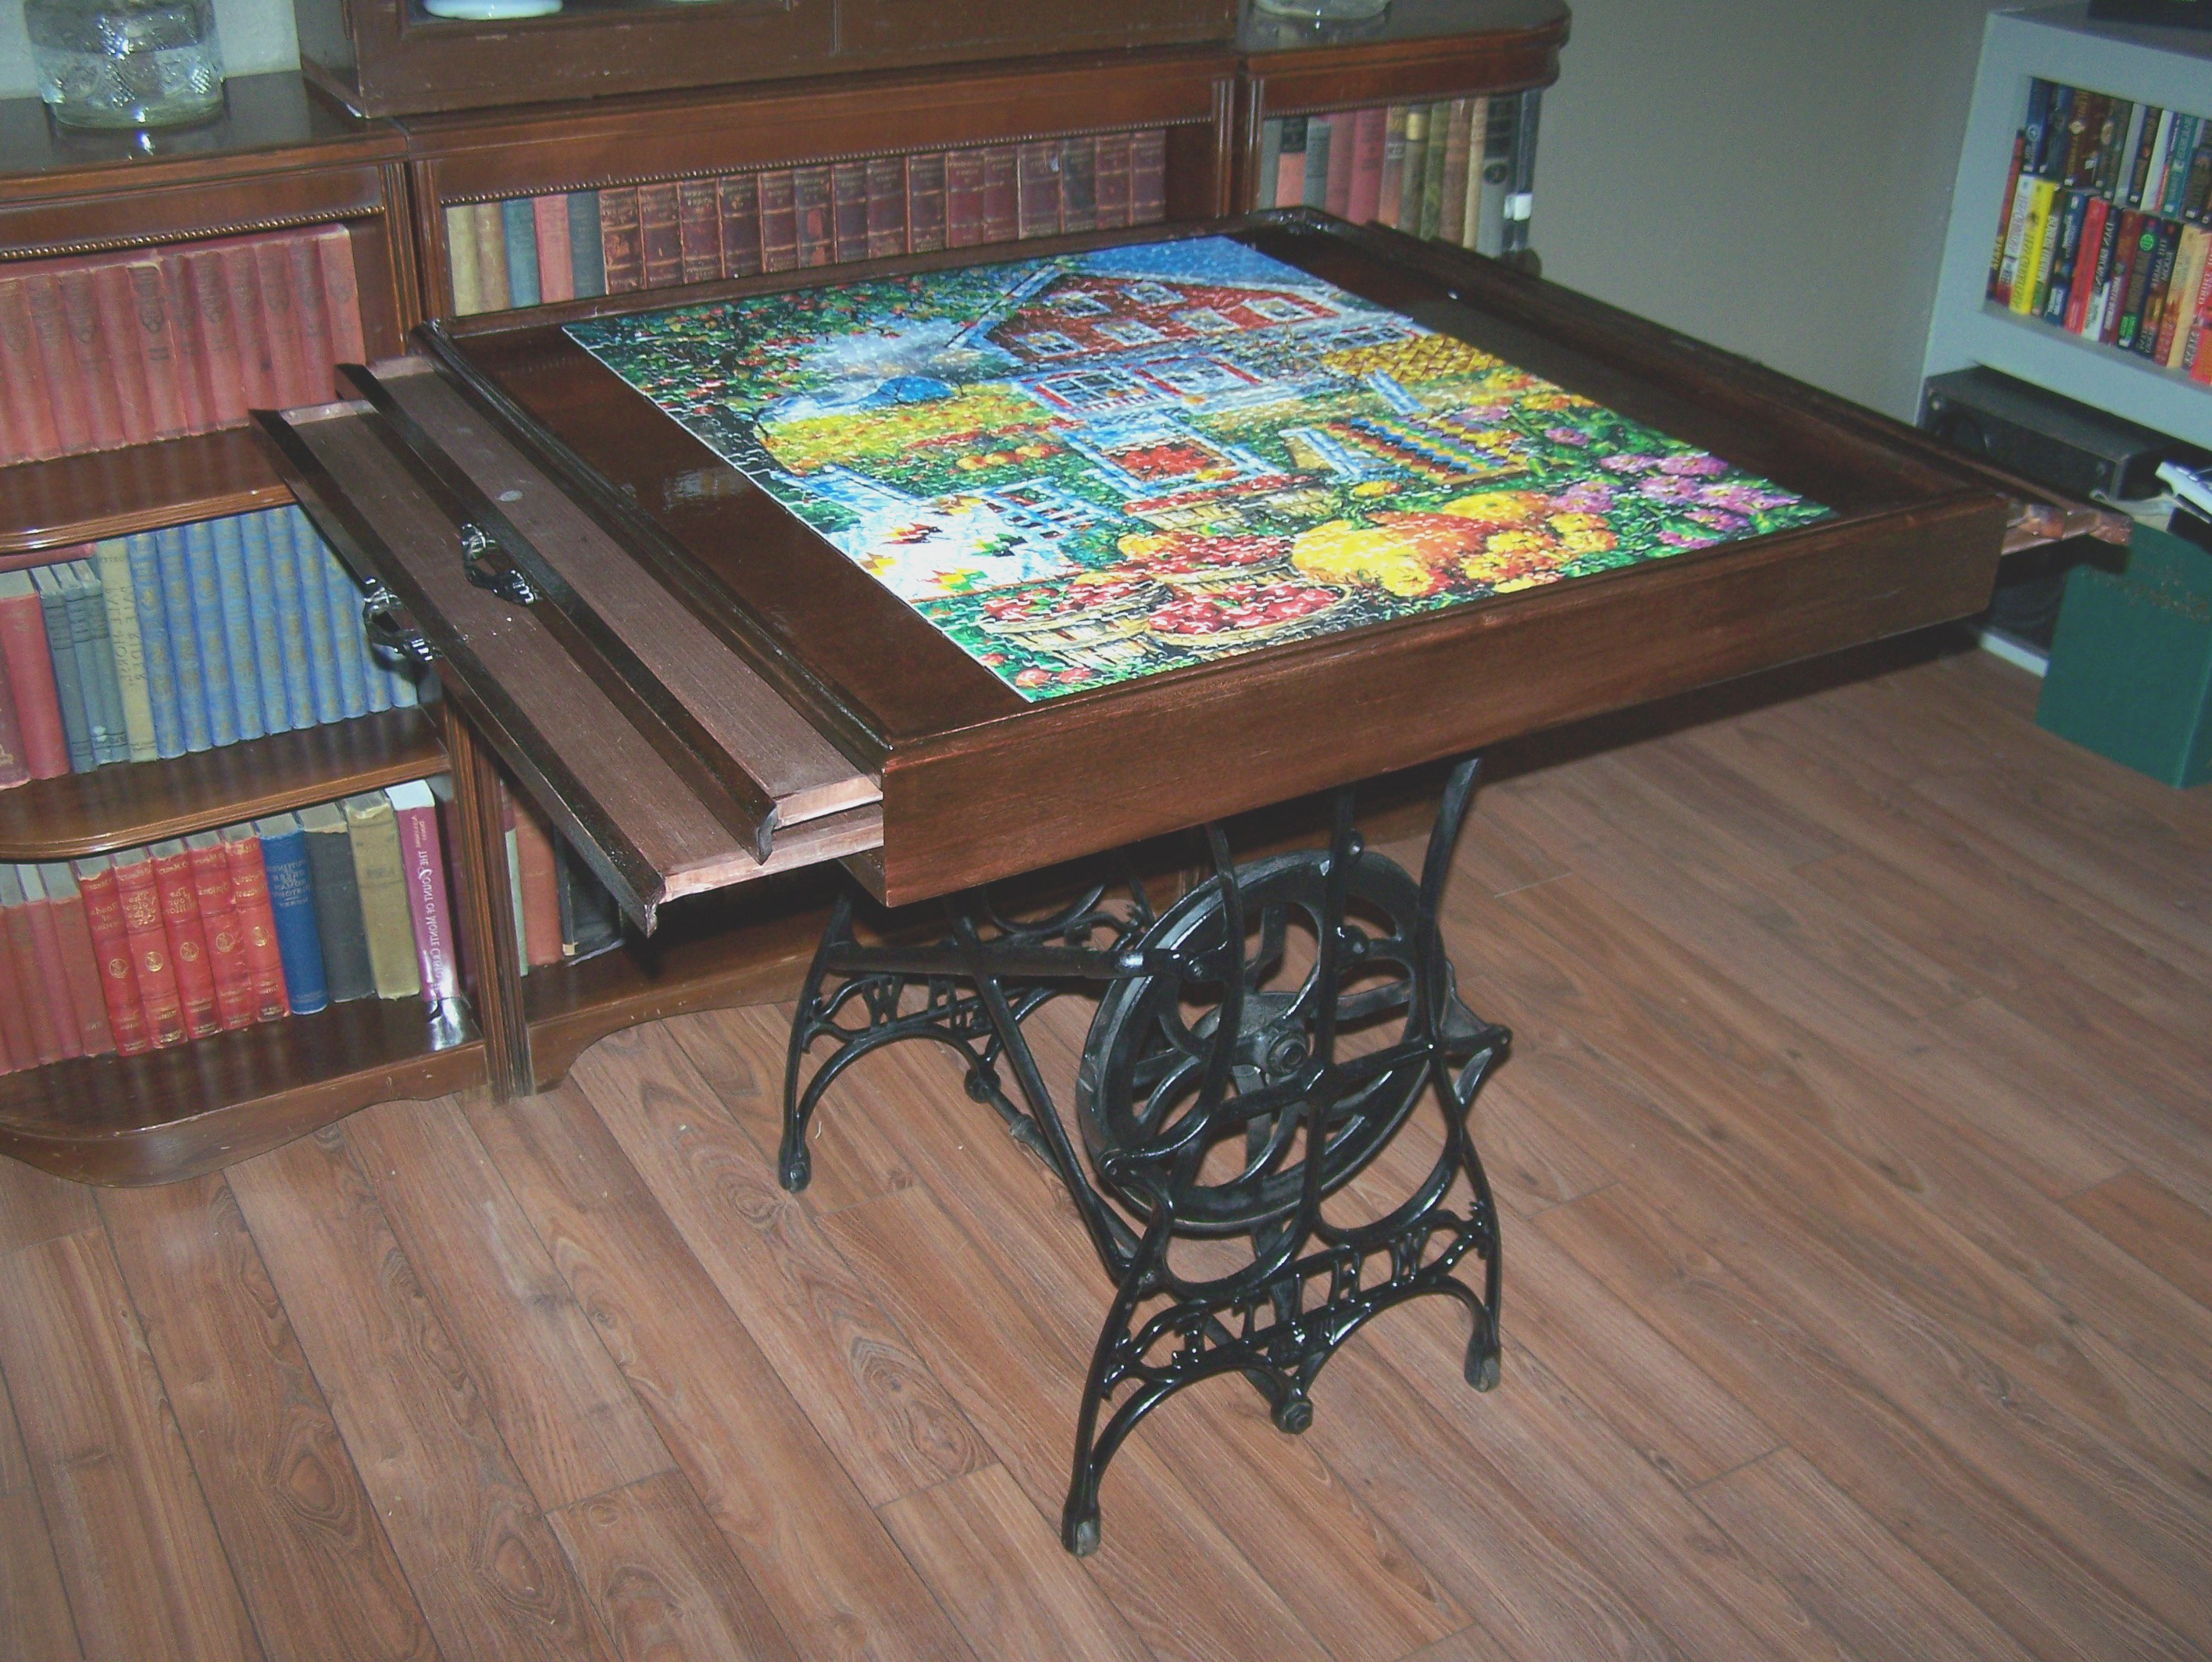 Best ideas about DIY Puzzle Table . Save or Pin DIY Puzzle Coffee Table Stool How To Simply Make It Now.